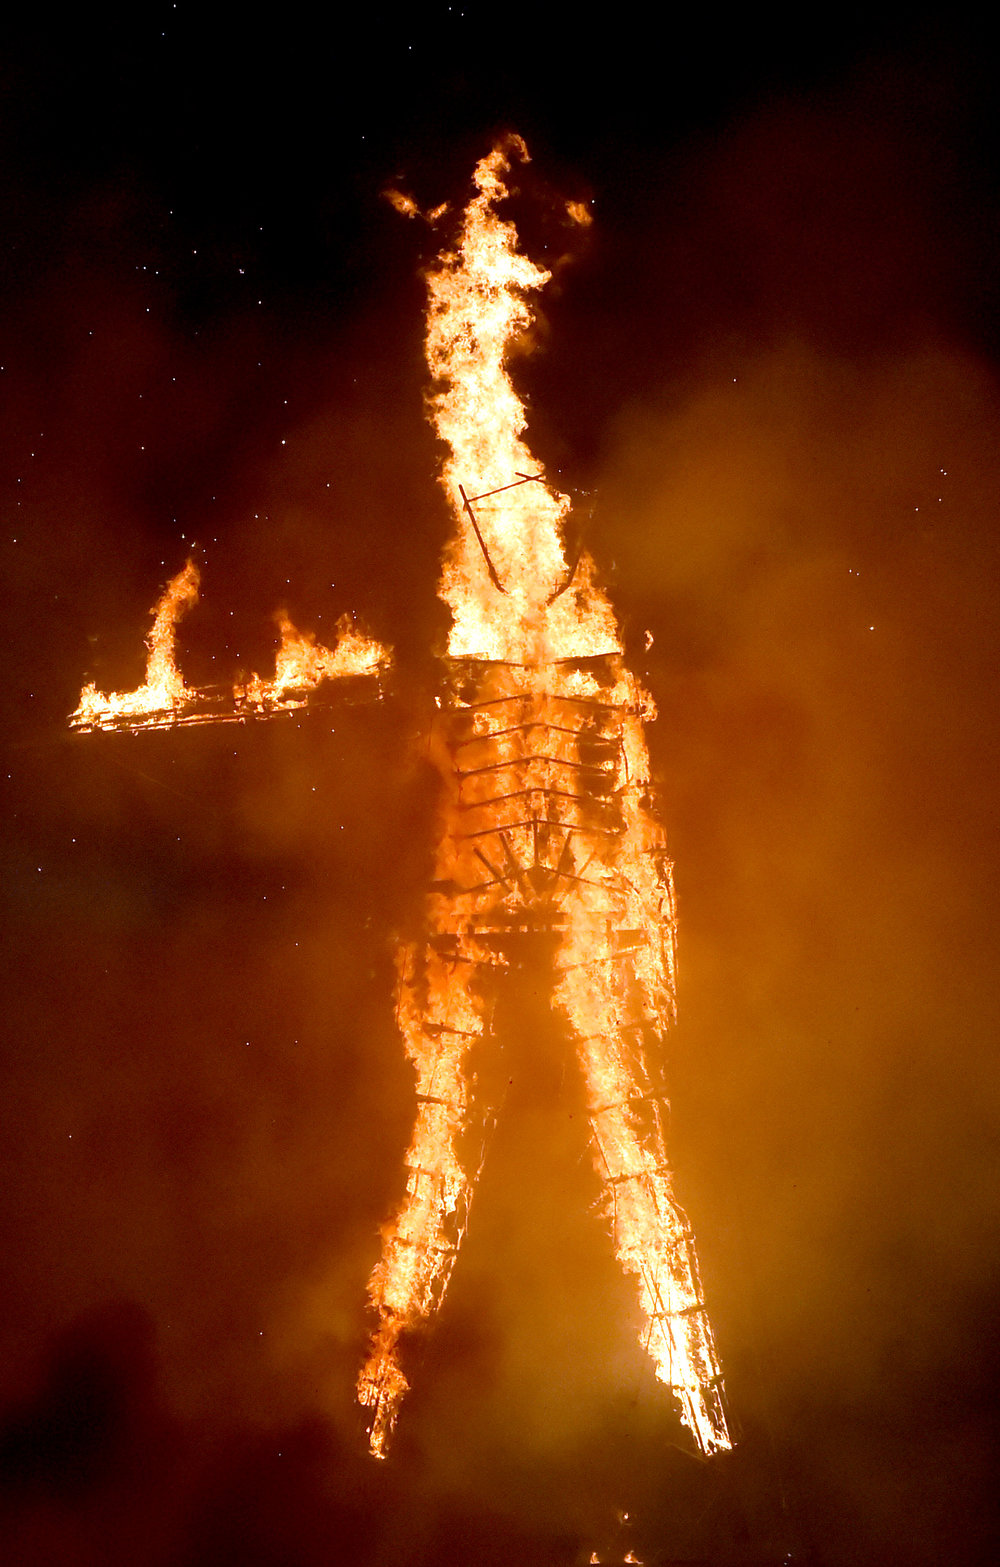 Which led to this illusion of a one armed man with a flaming middle finger